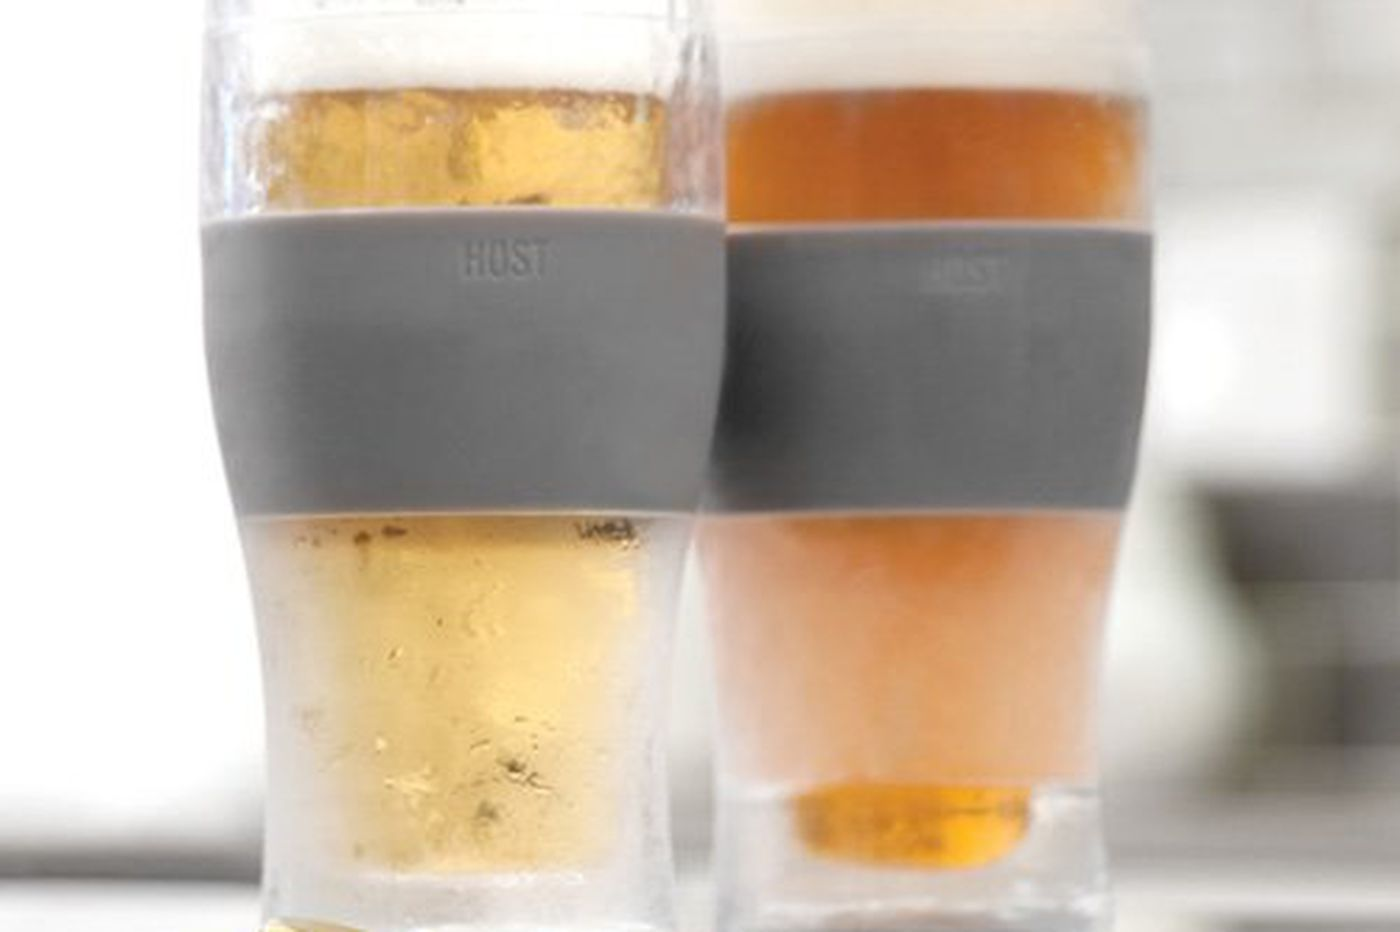 Freezable pint glasses for an ice-cold Father's Day gift